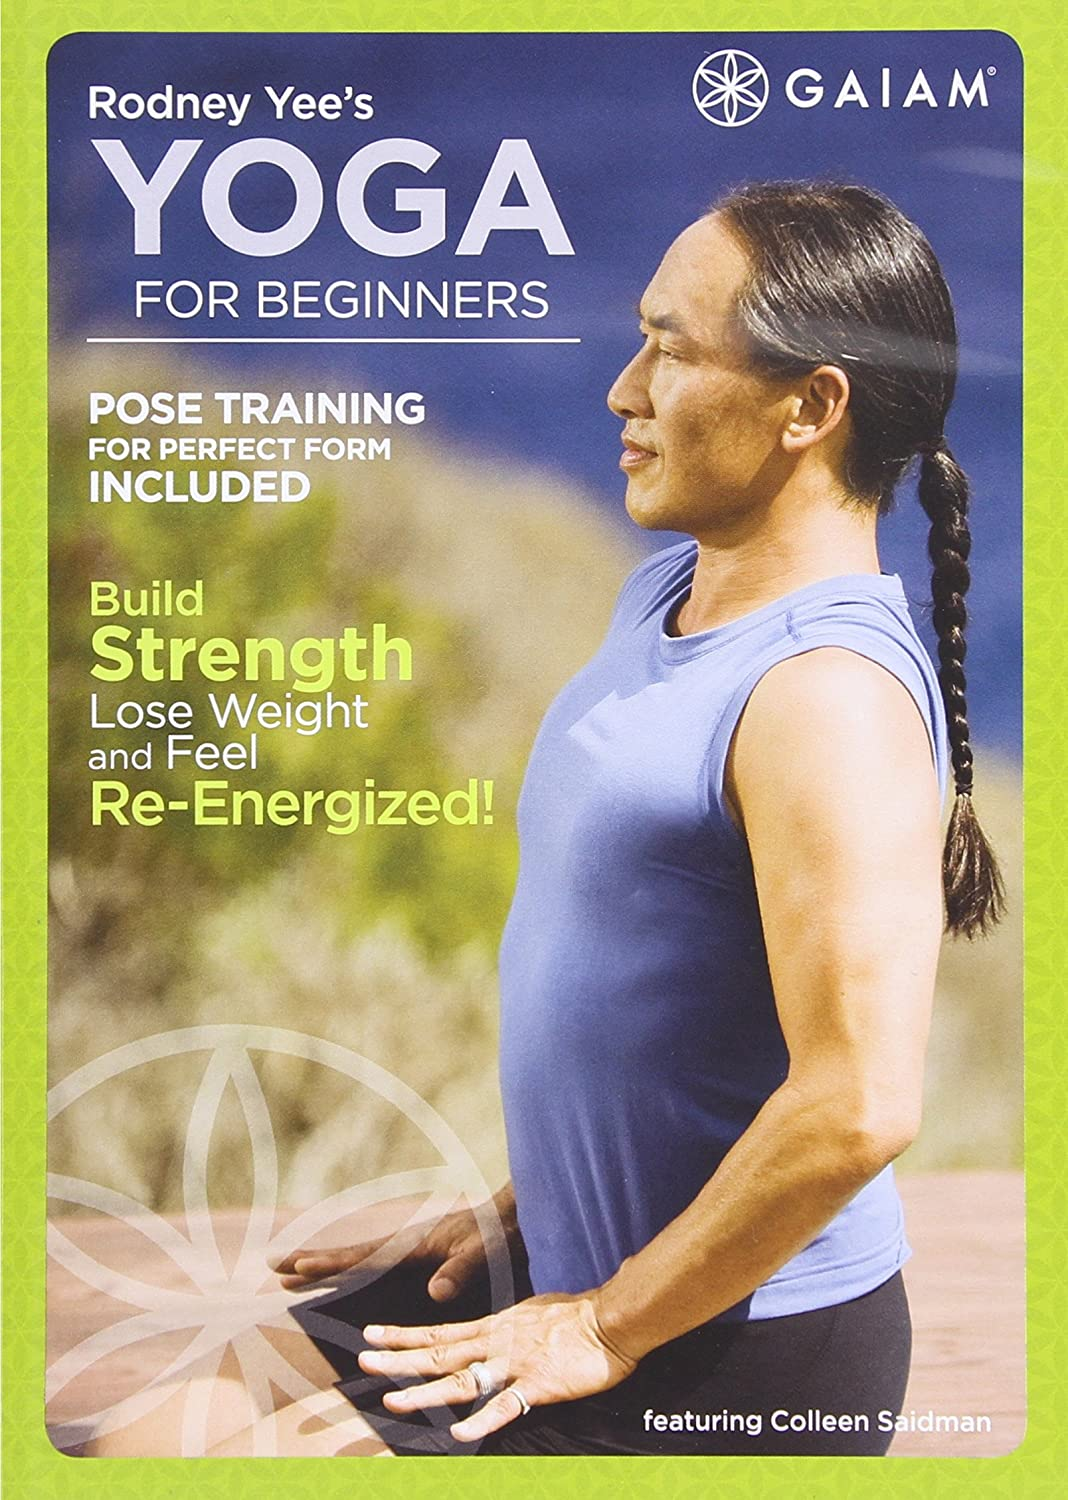 Amazon.com: Rodney Yees Yoga for Beginners: Rodney Yee ...